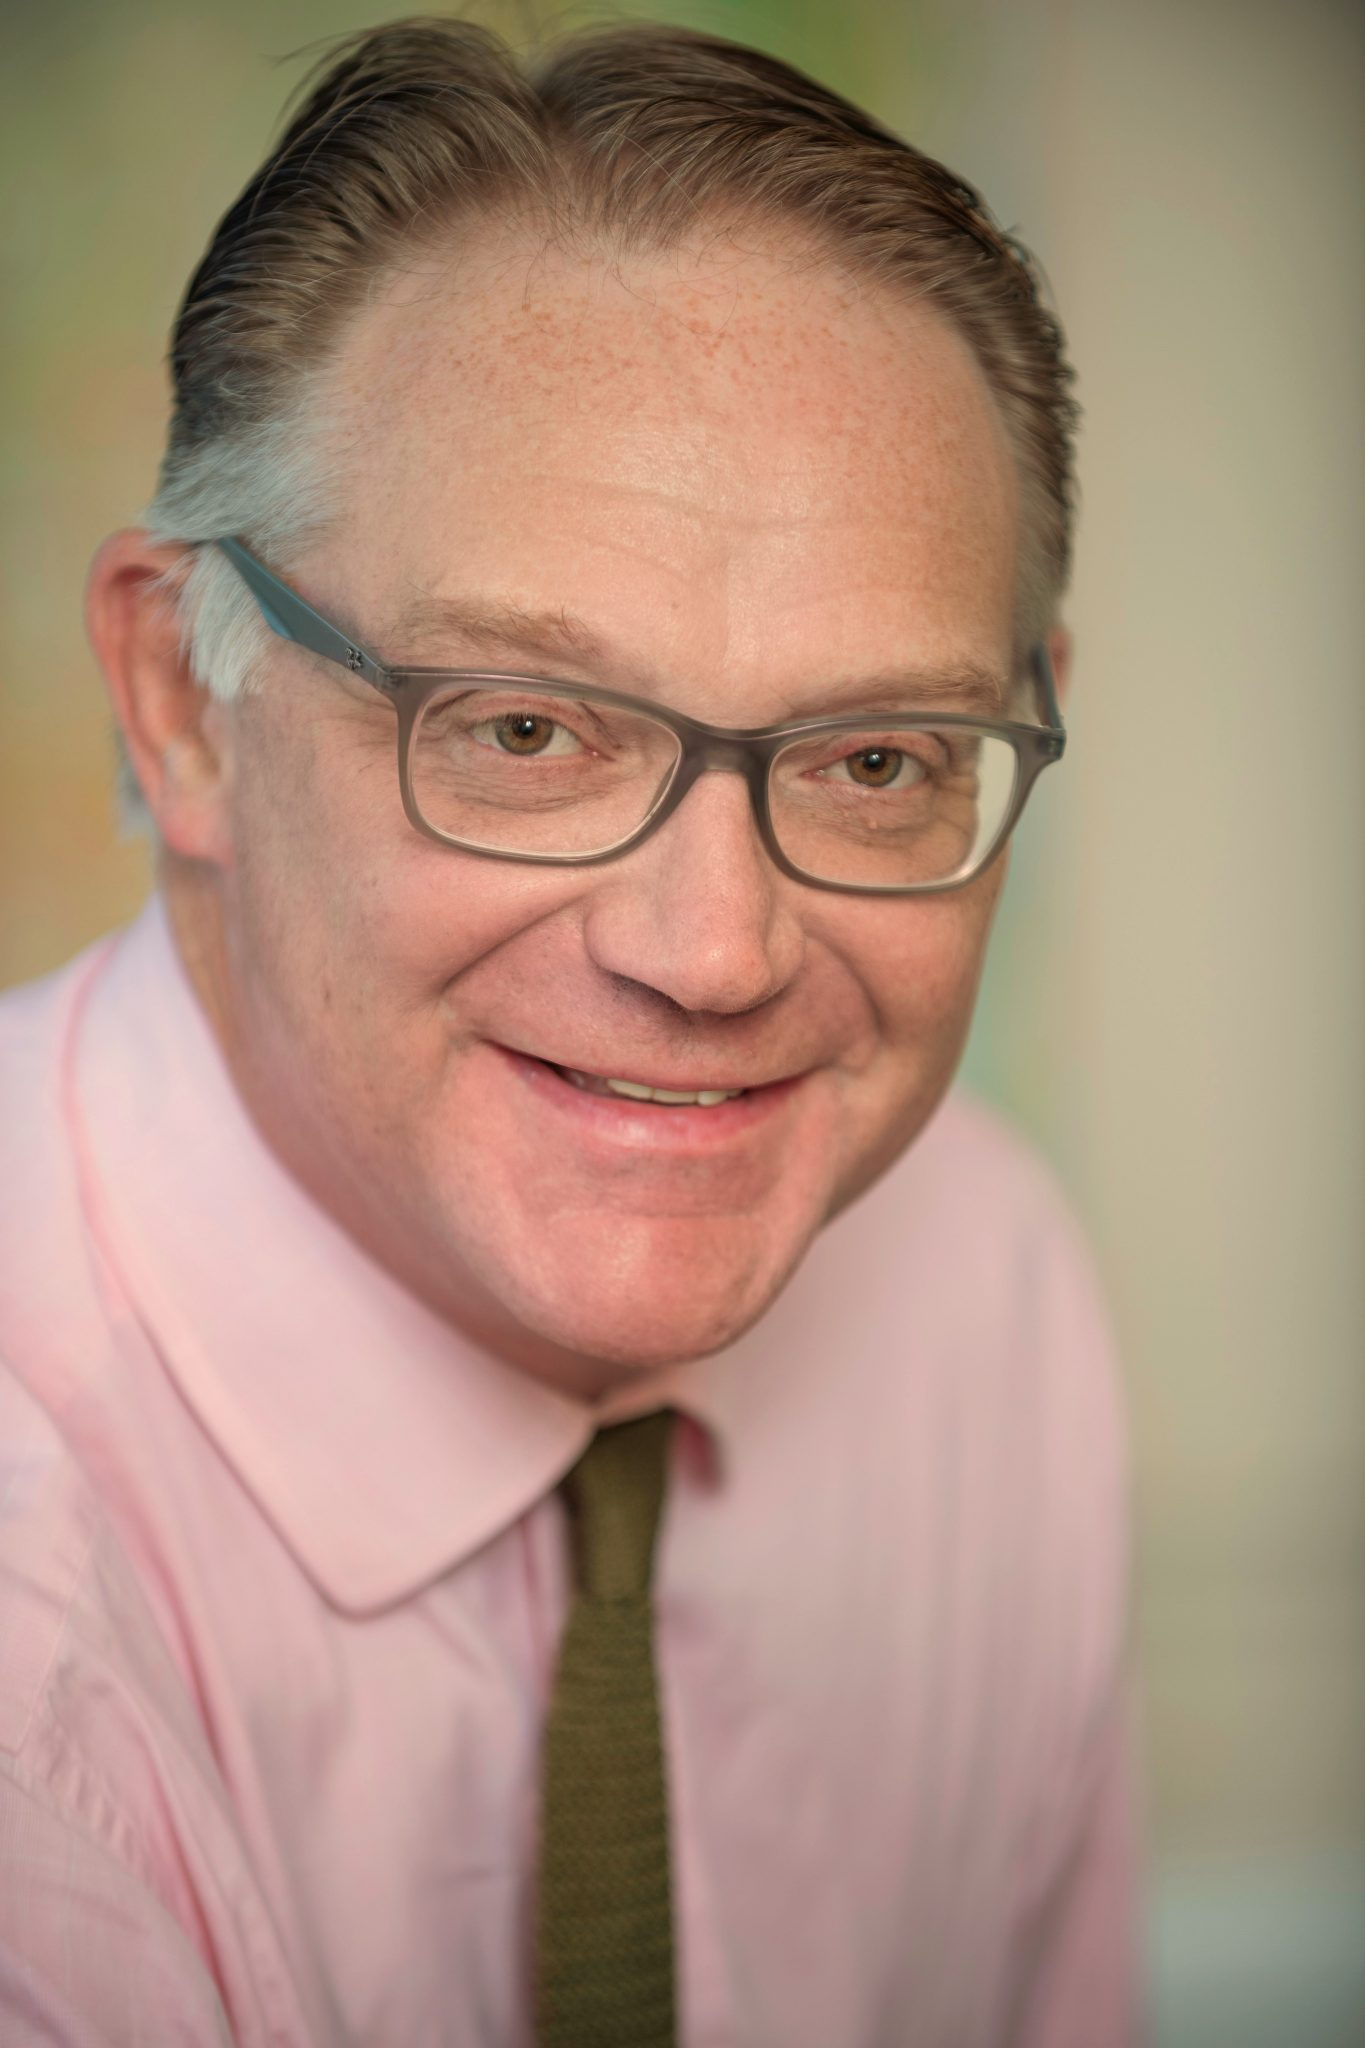 Guy Everington, Director Castleacre Insurance